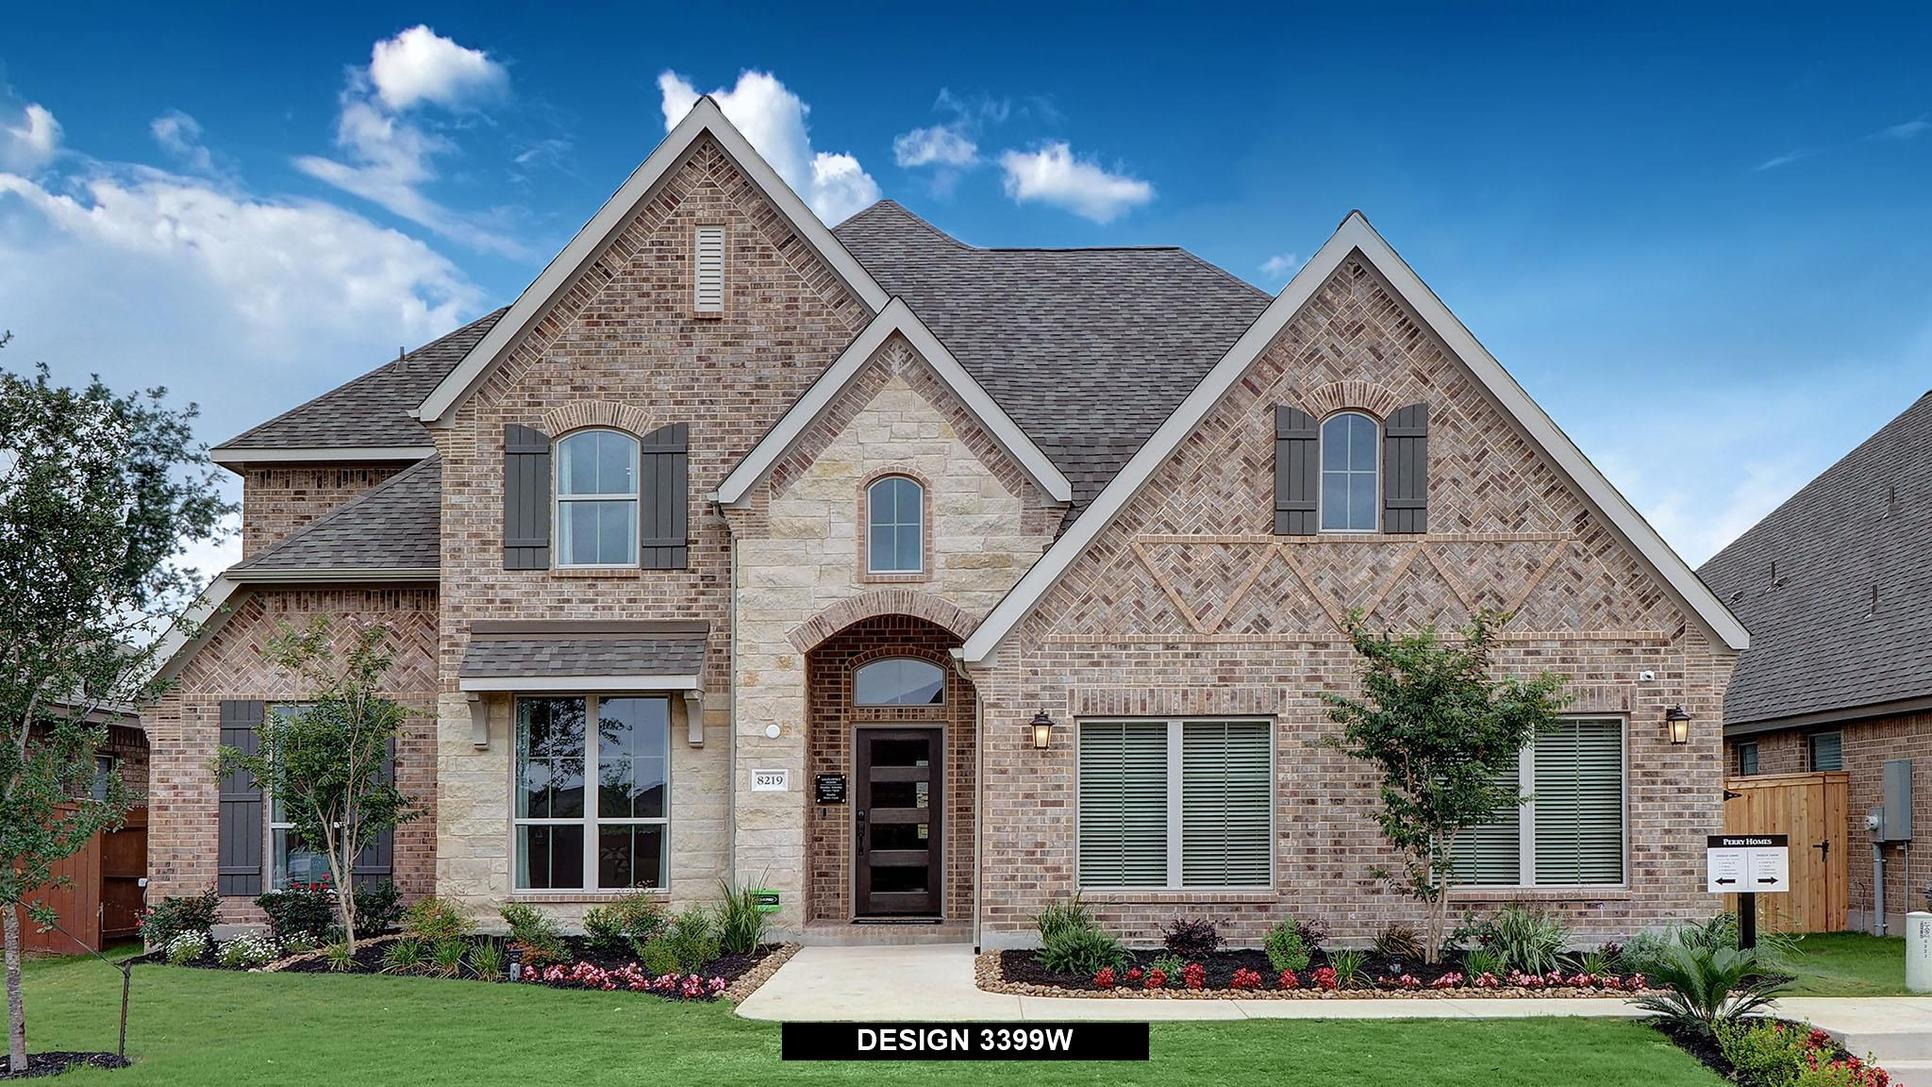 Plan 3399W:Representative photo.  Features and specifications may vary by community.